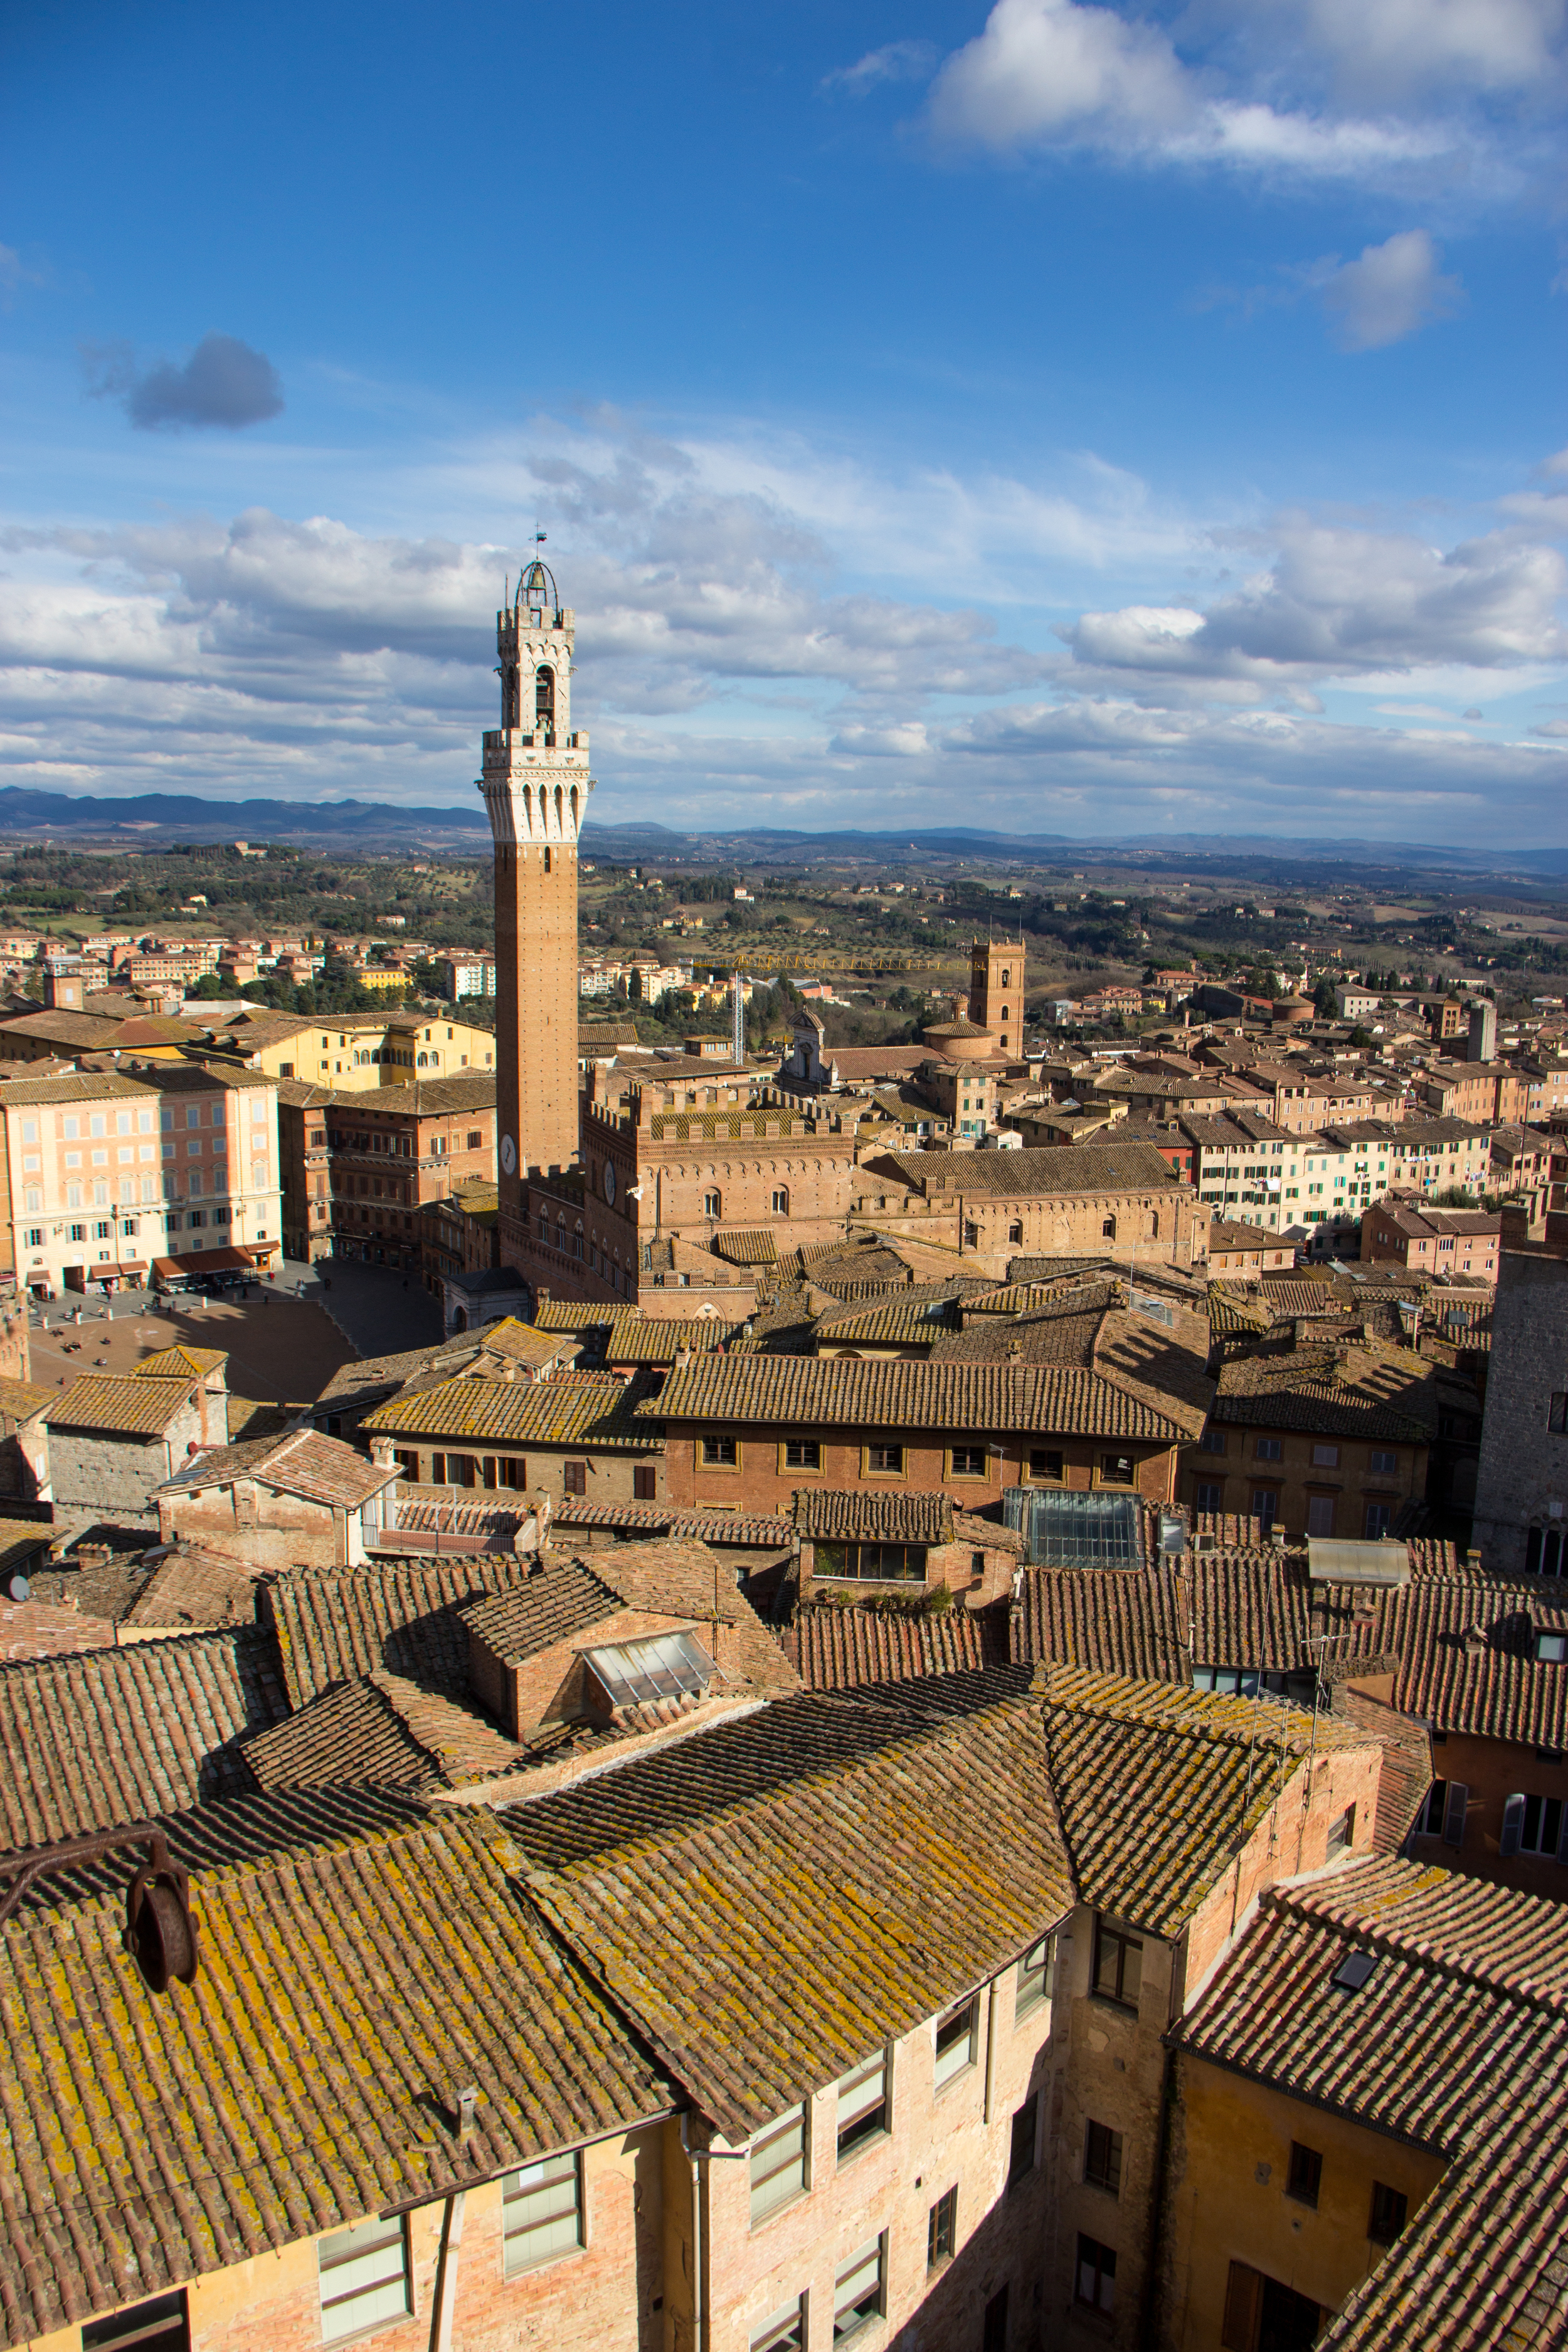 Day trips to beautiful places like Siena...